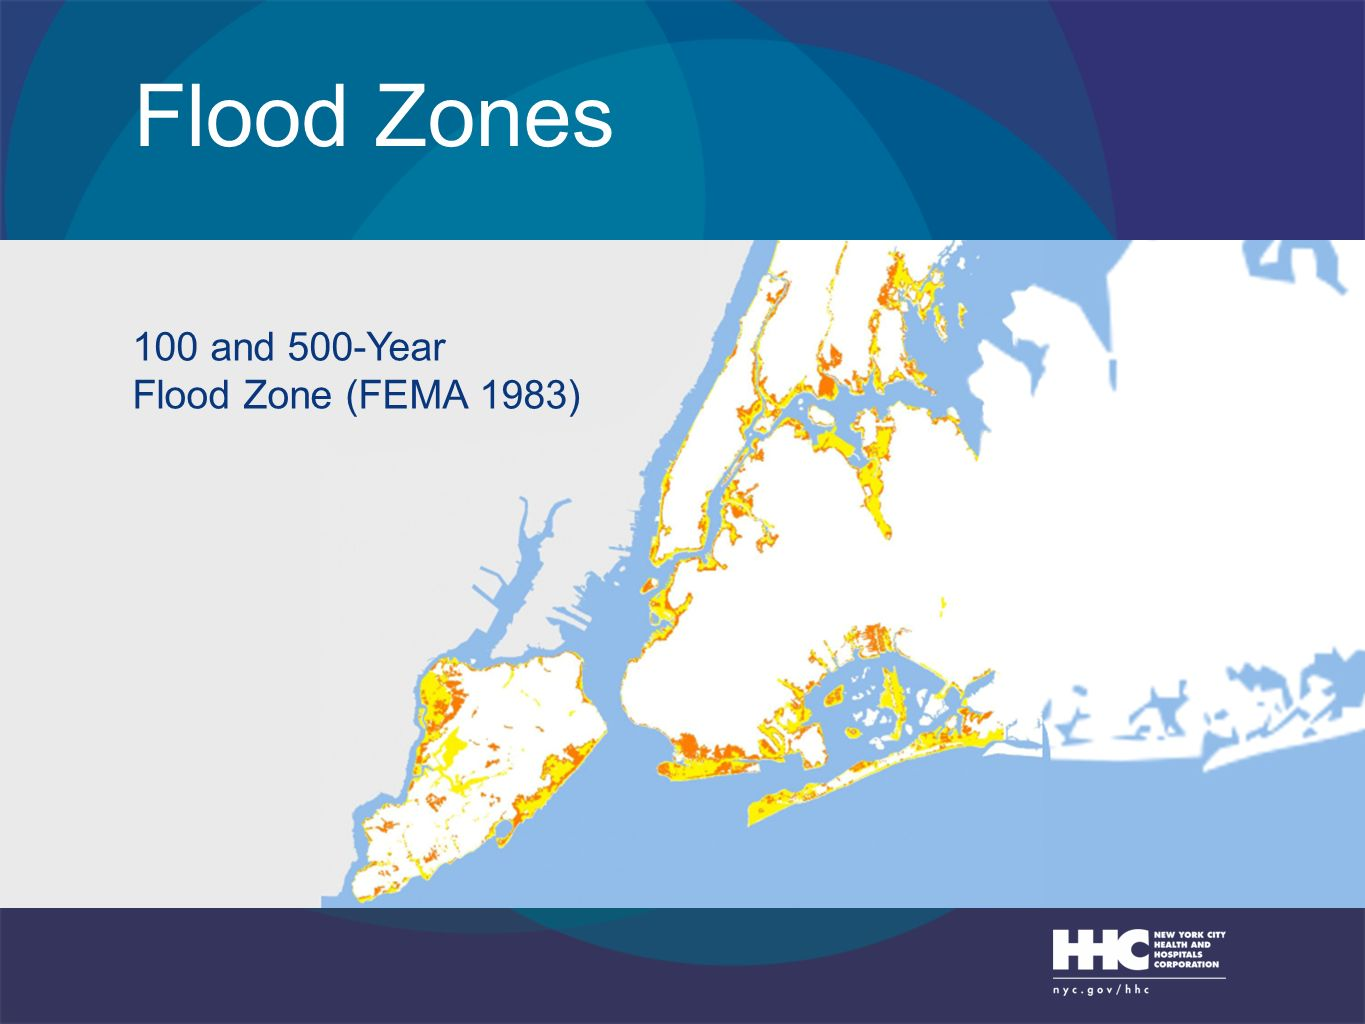 Flood Zones 100 and 500-Year Flood Zone (FEMA 1983)